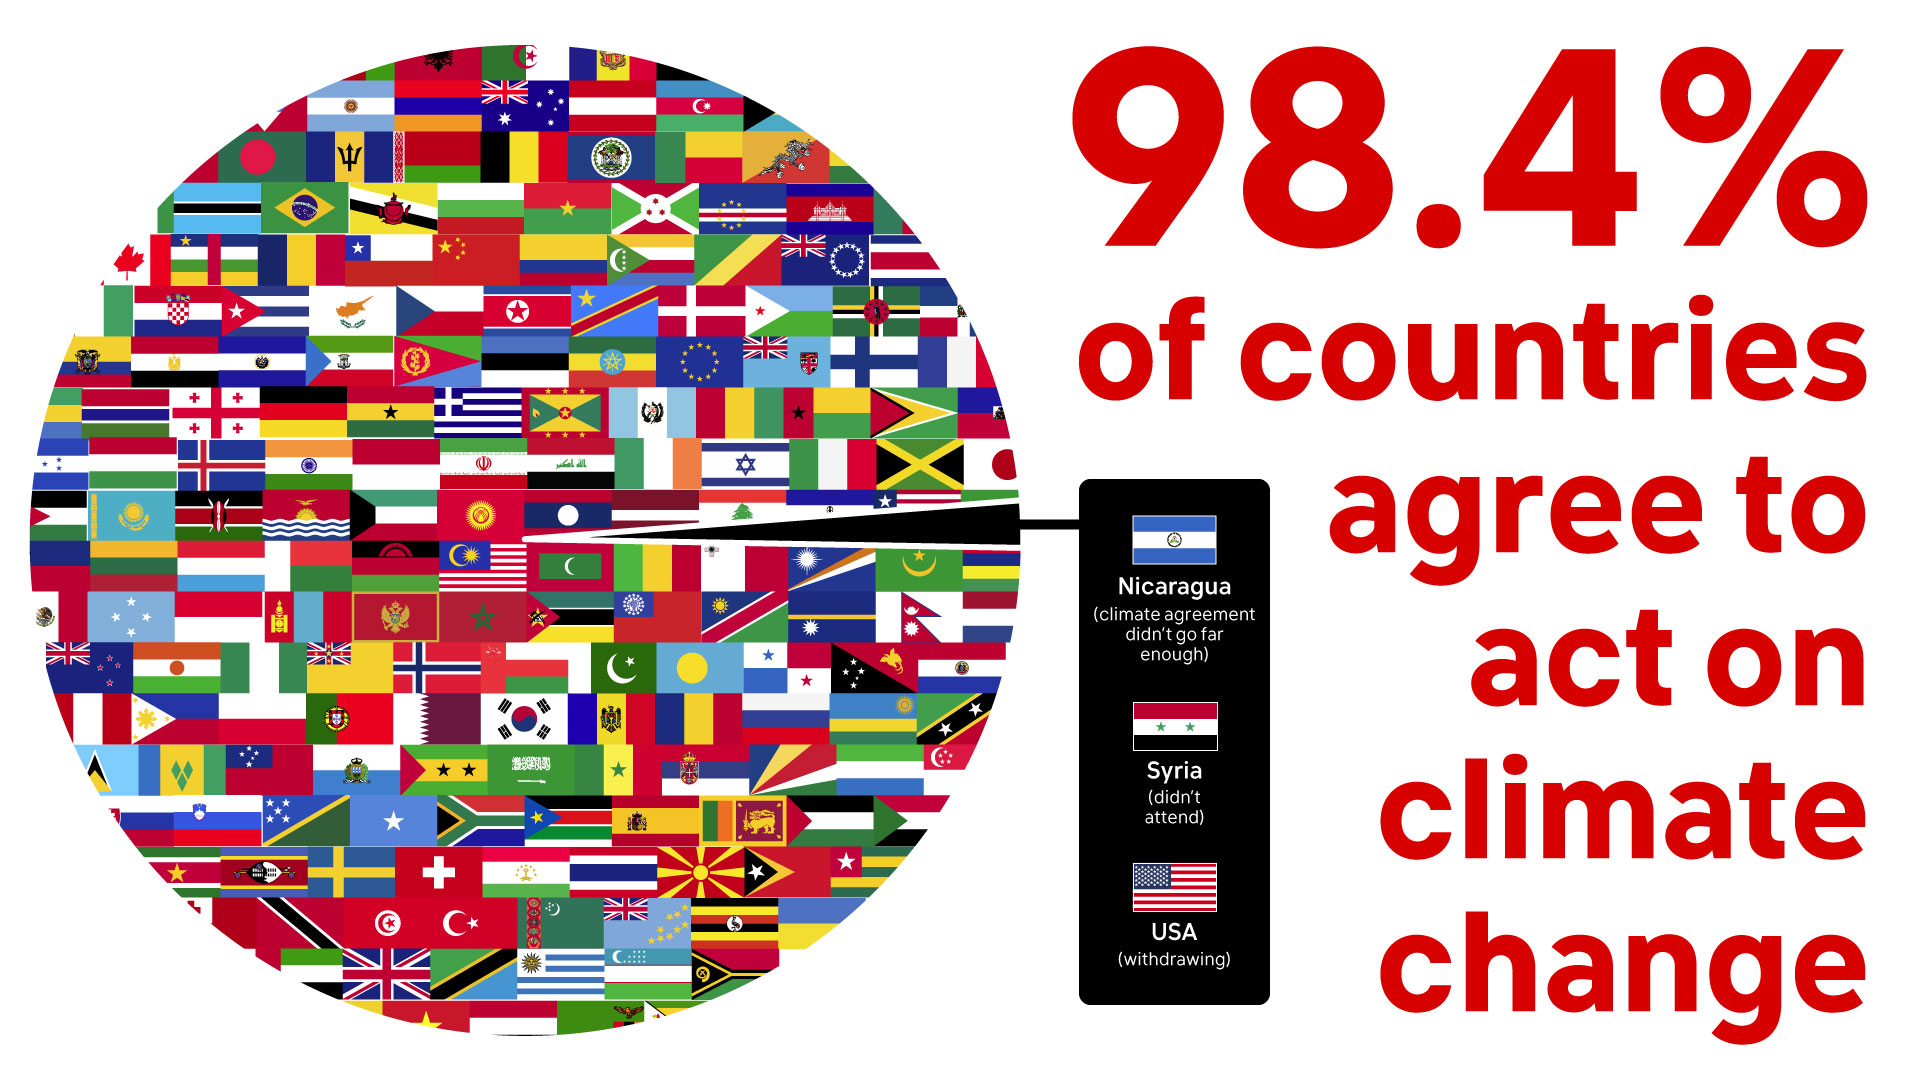 Global consensus on climate action